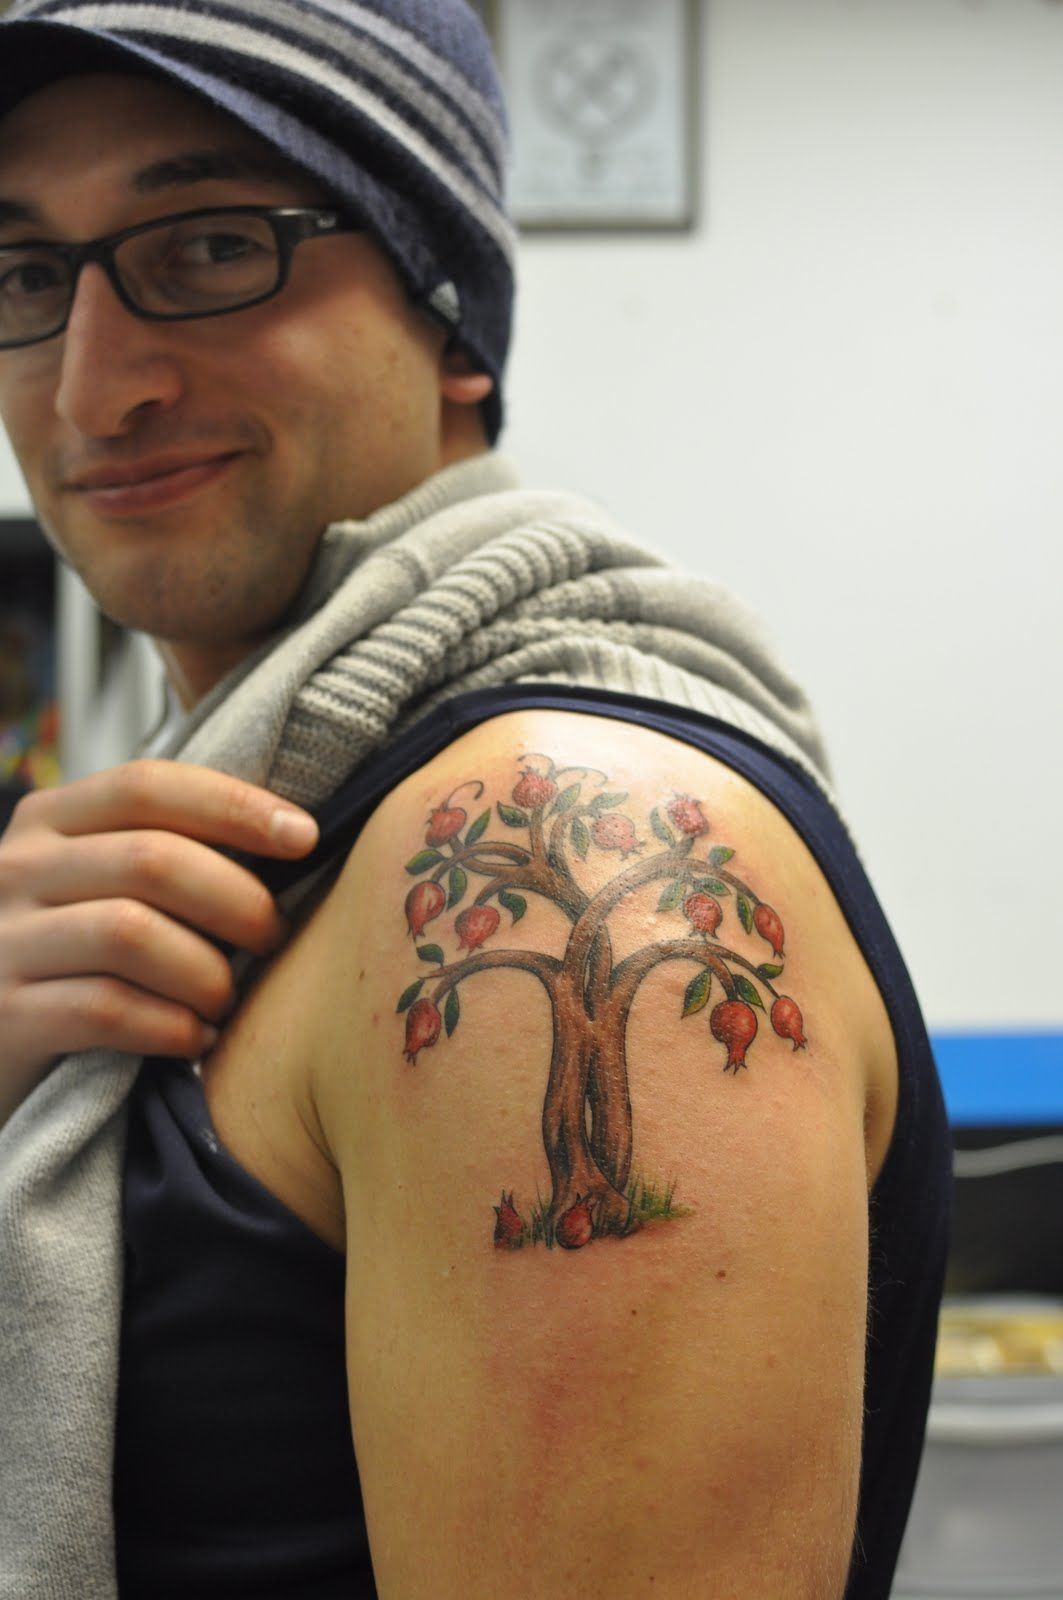 Pomegranate tree tattoo meaning fertility righteousness roman pomegranate tree tattoo meaning fertility righteousness roman meaning sacredness of marriage buycottarizona